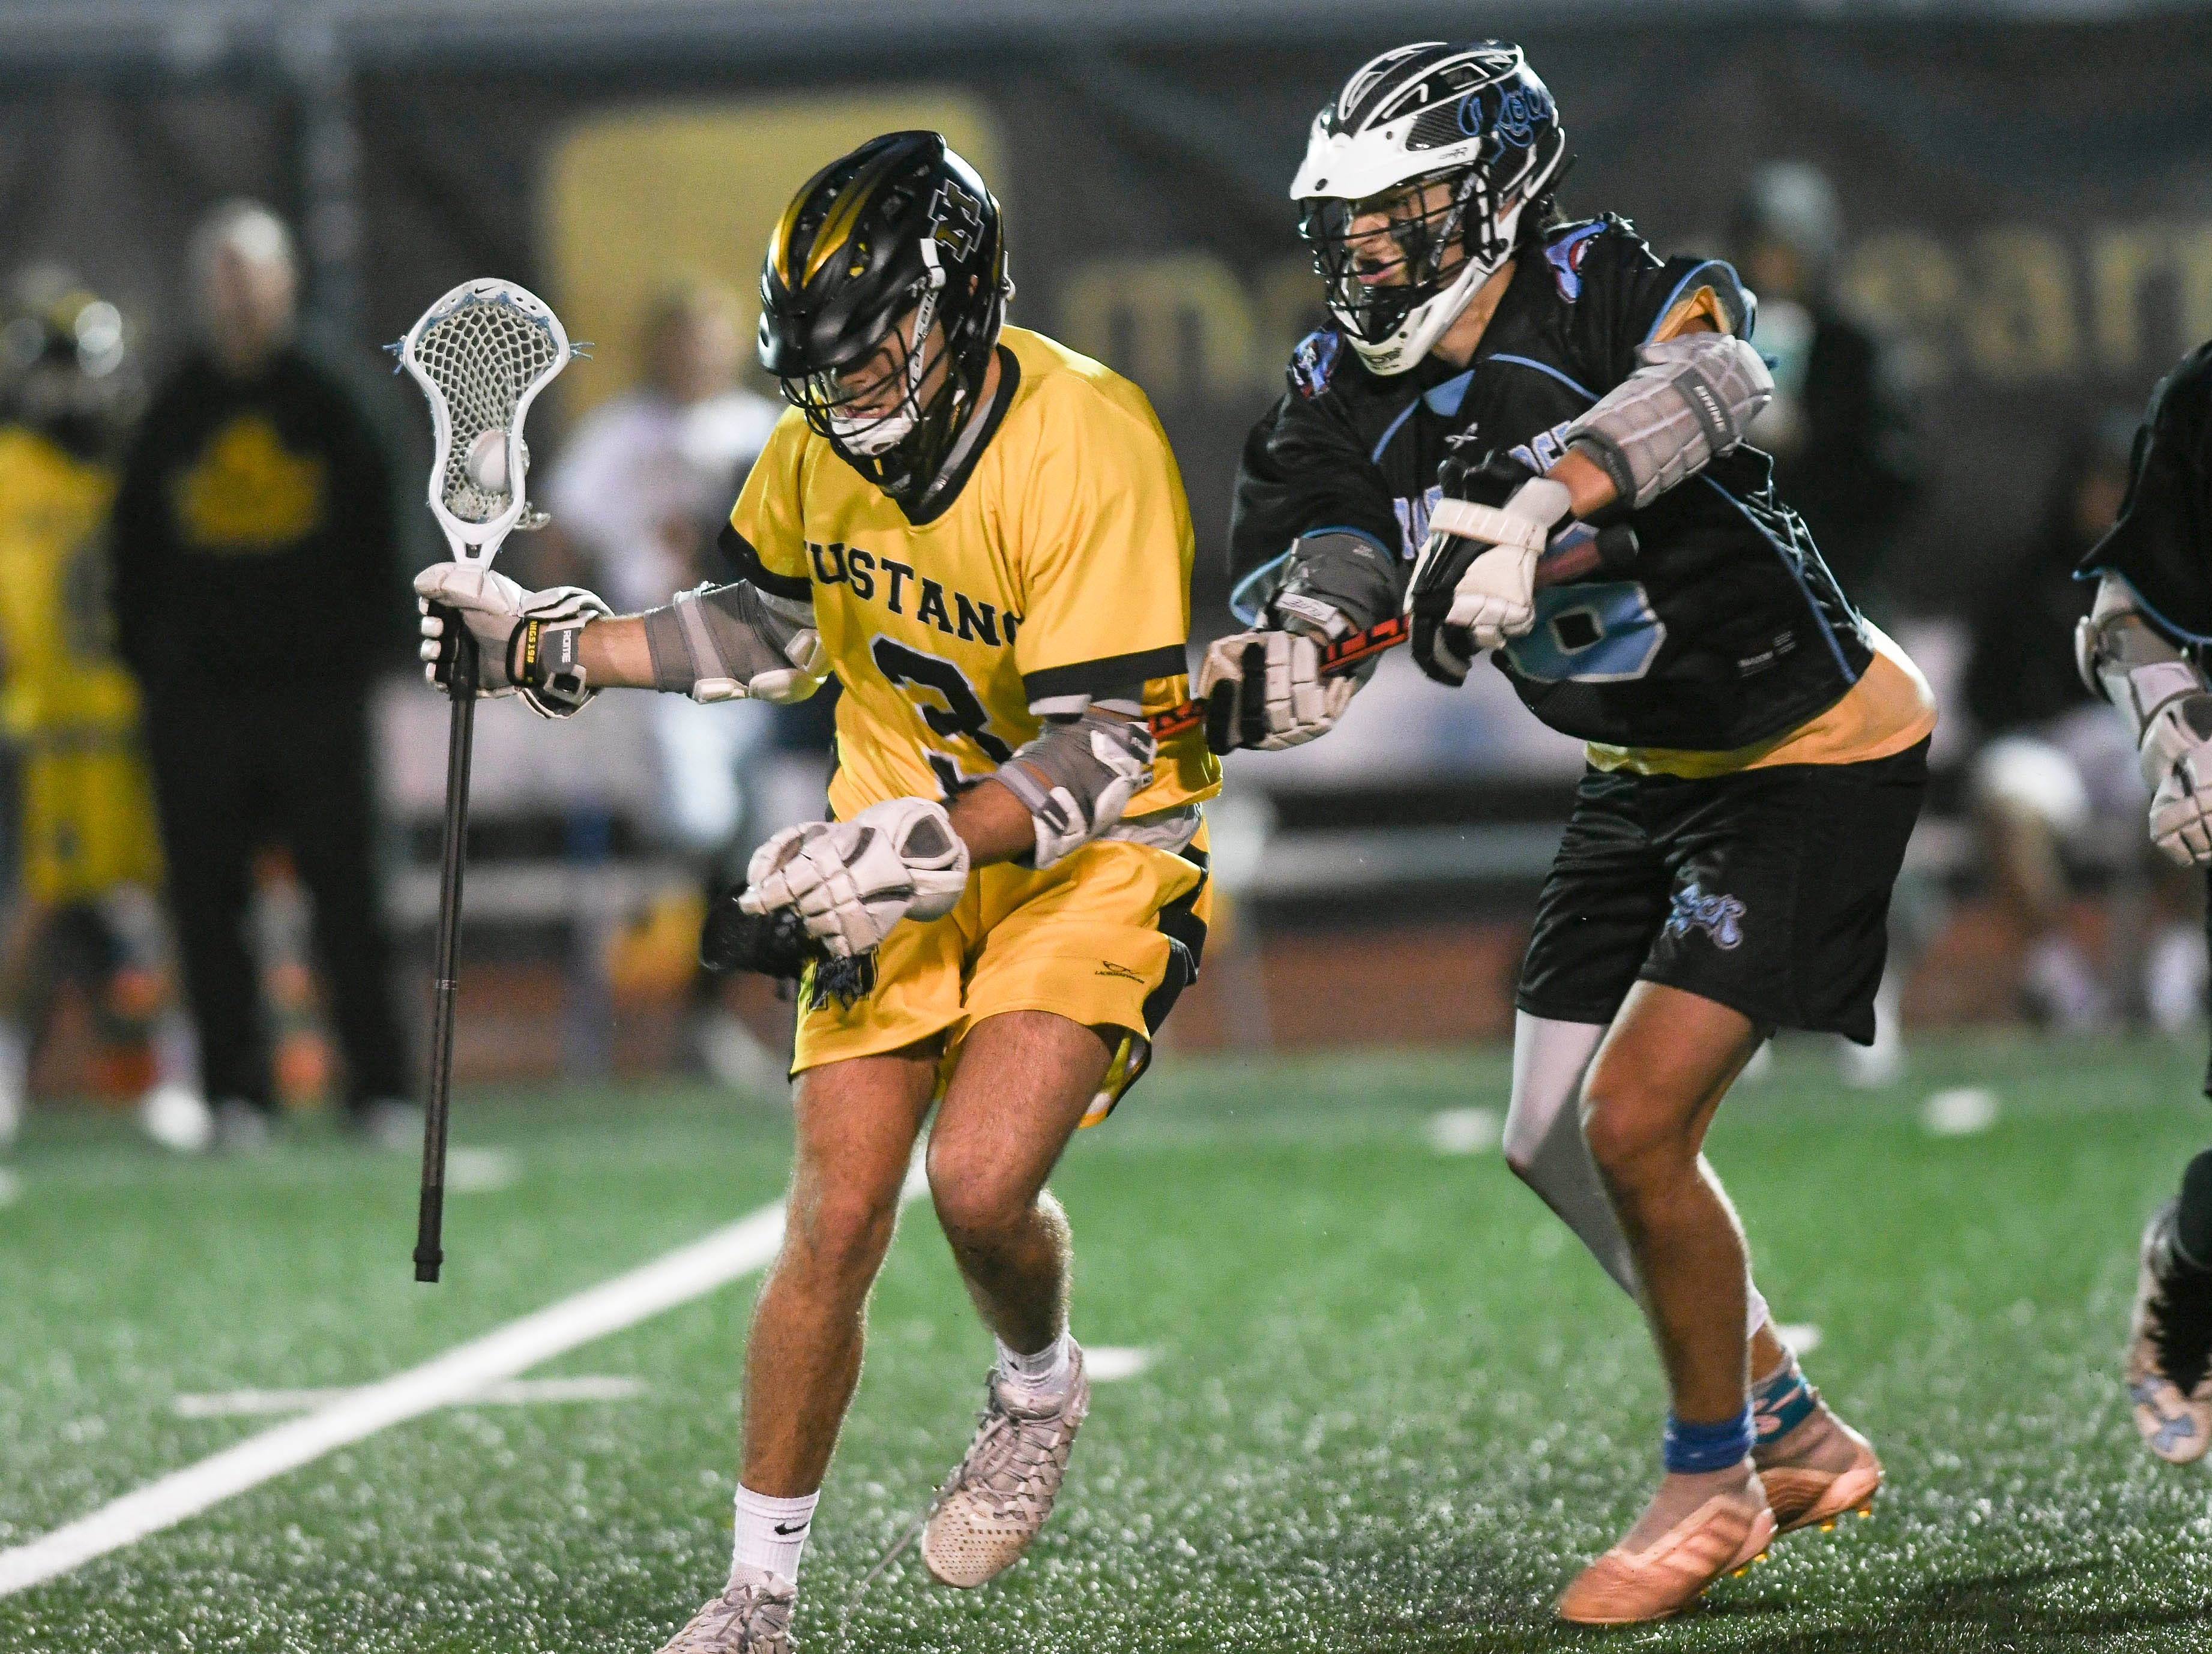 Nick Sidor of Merritt Island is harassed by Hayden Knight of Rockledge during Wednesday's game.